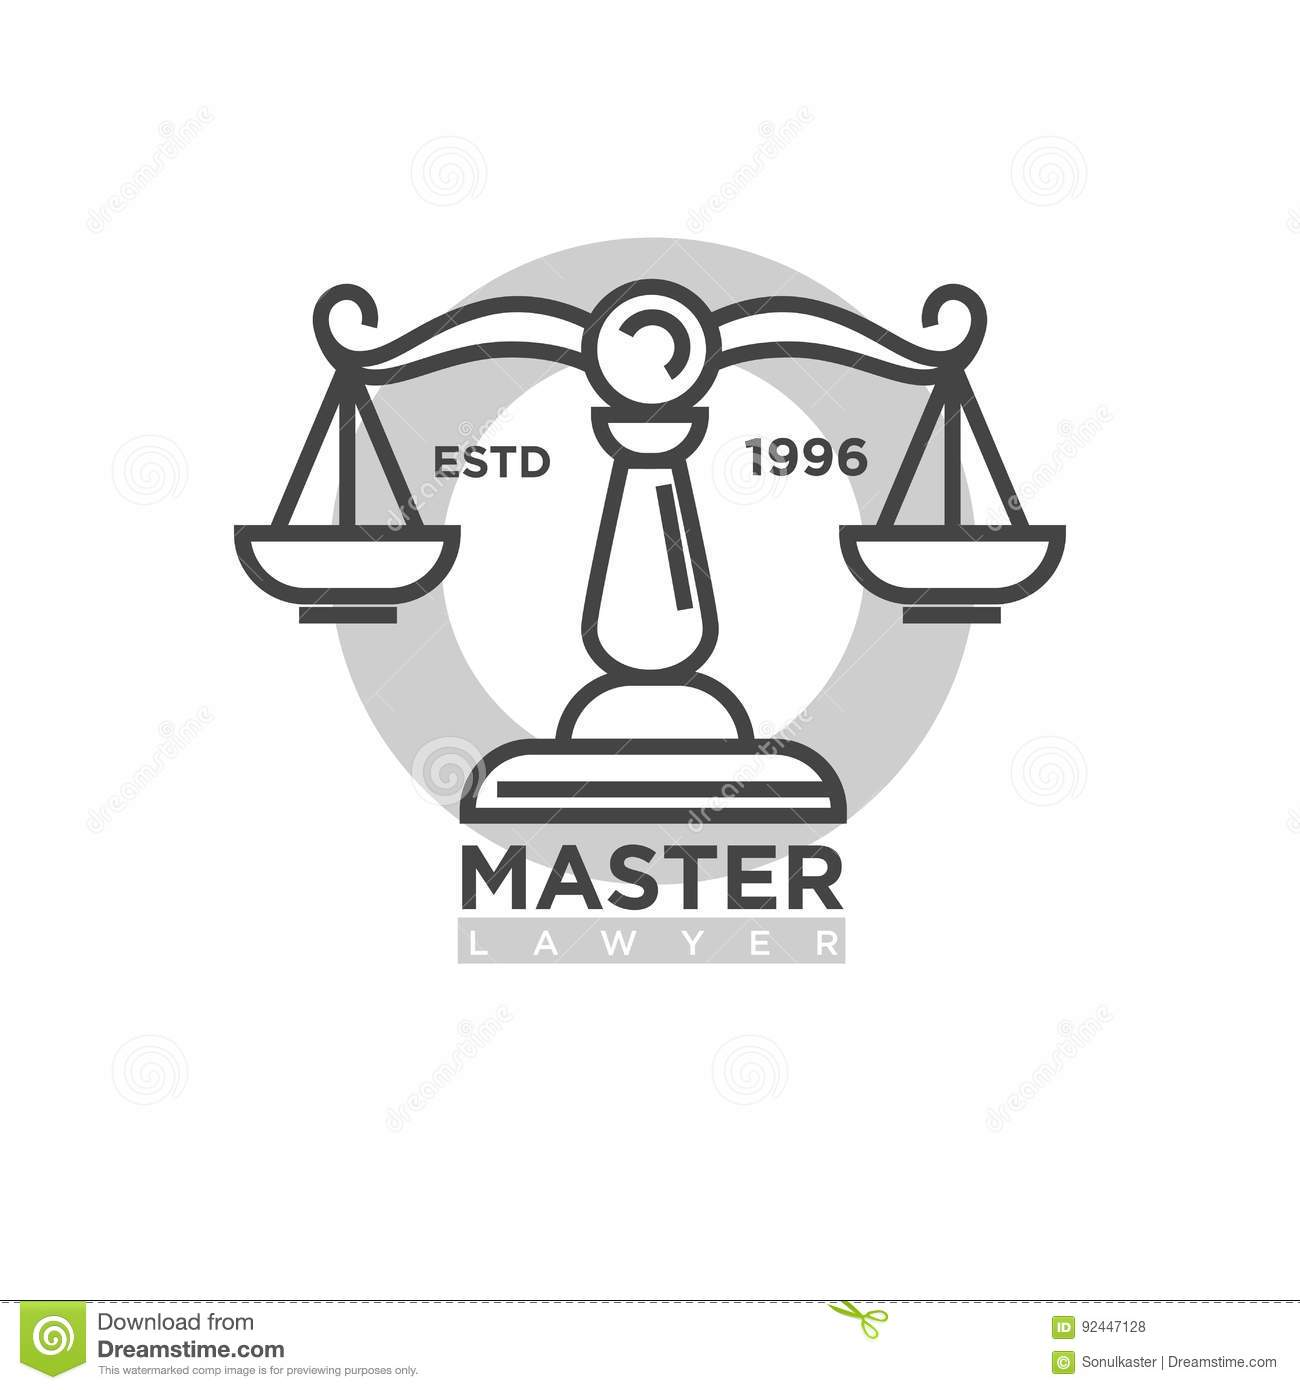 Master Lawyer Organization Emblem With Antique Scales Illustration